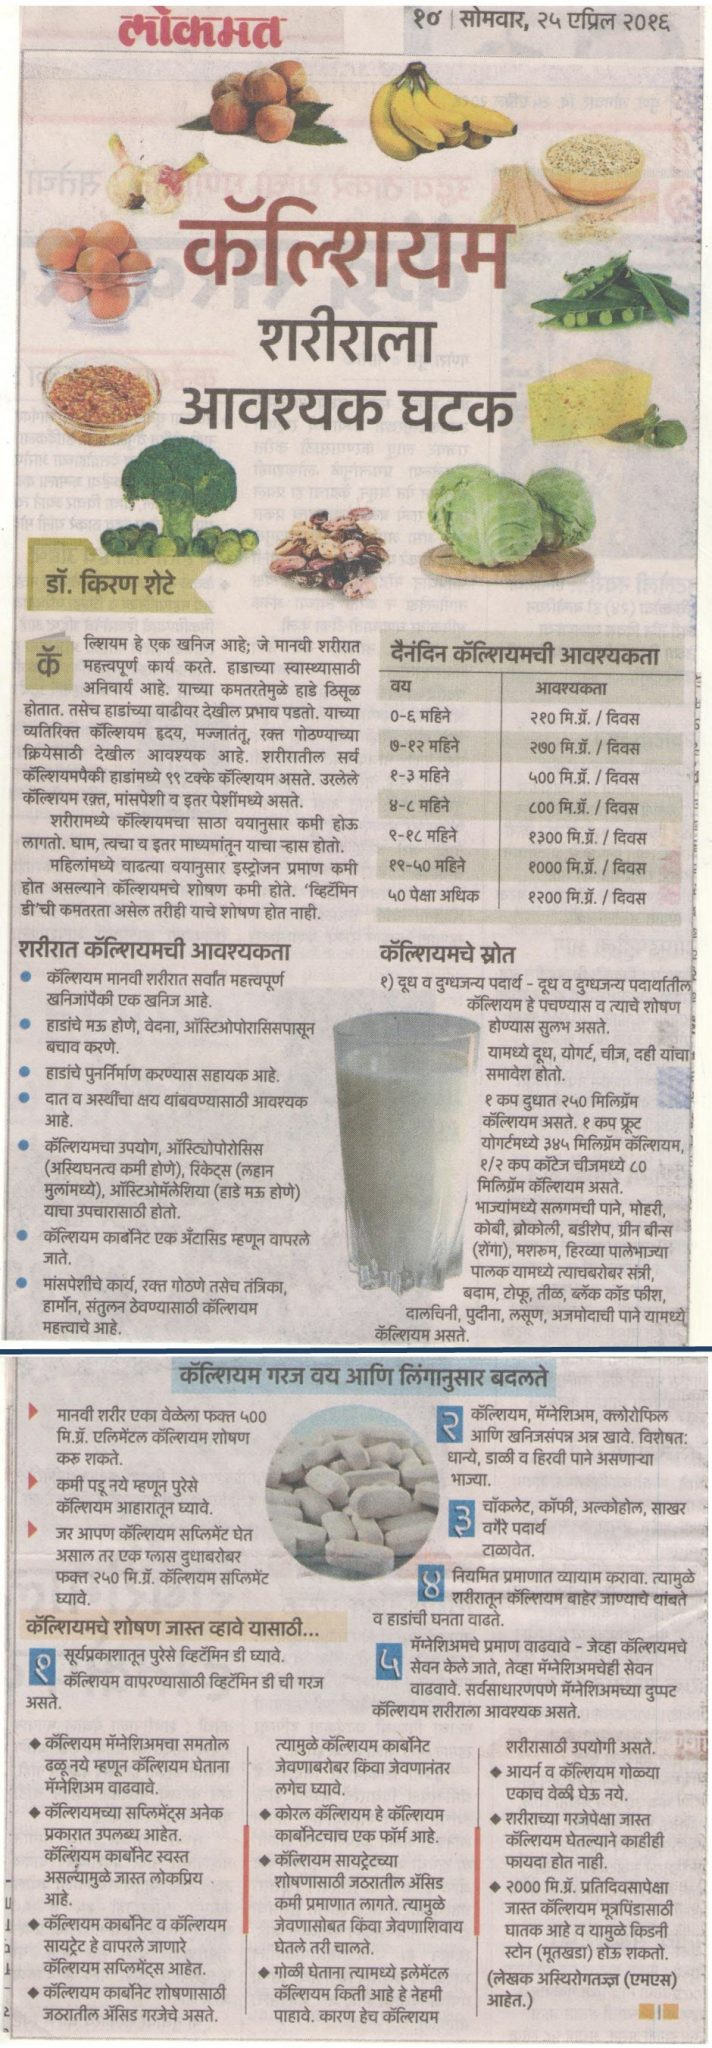 Importance of Calcium for our Body